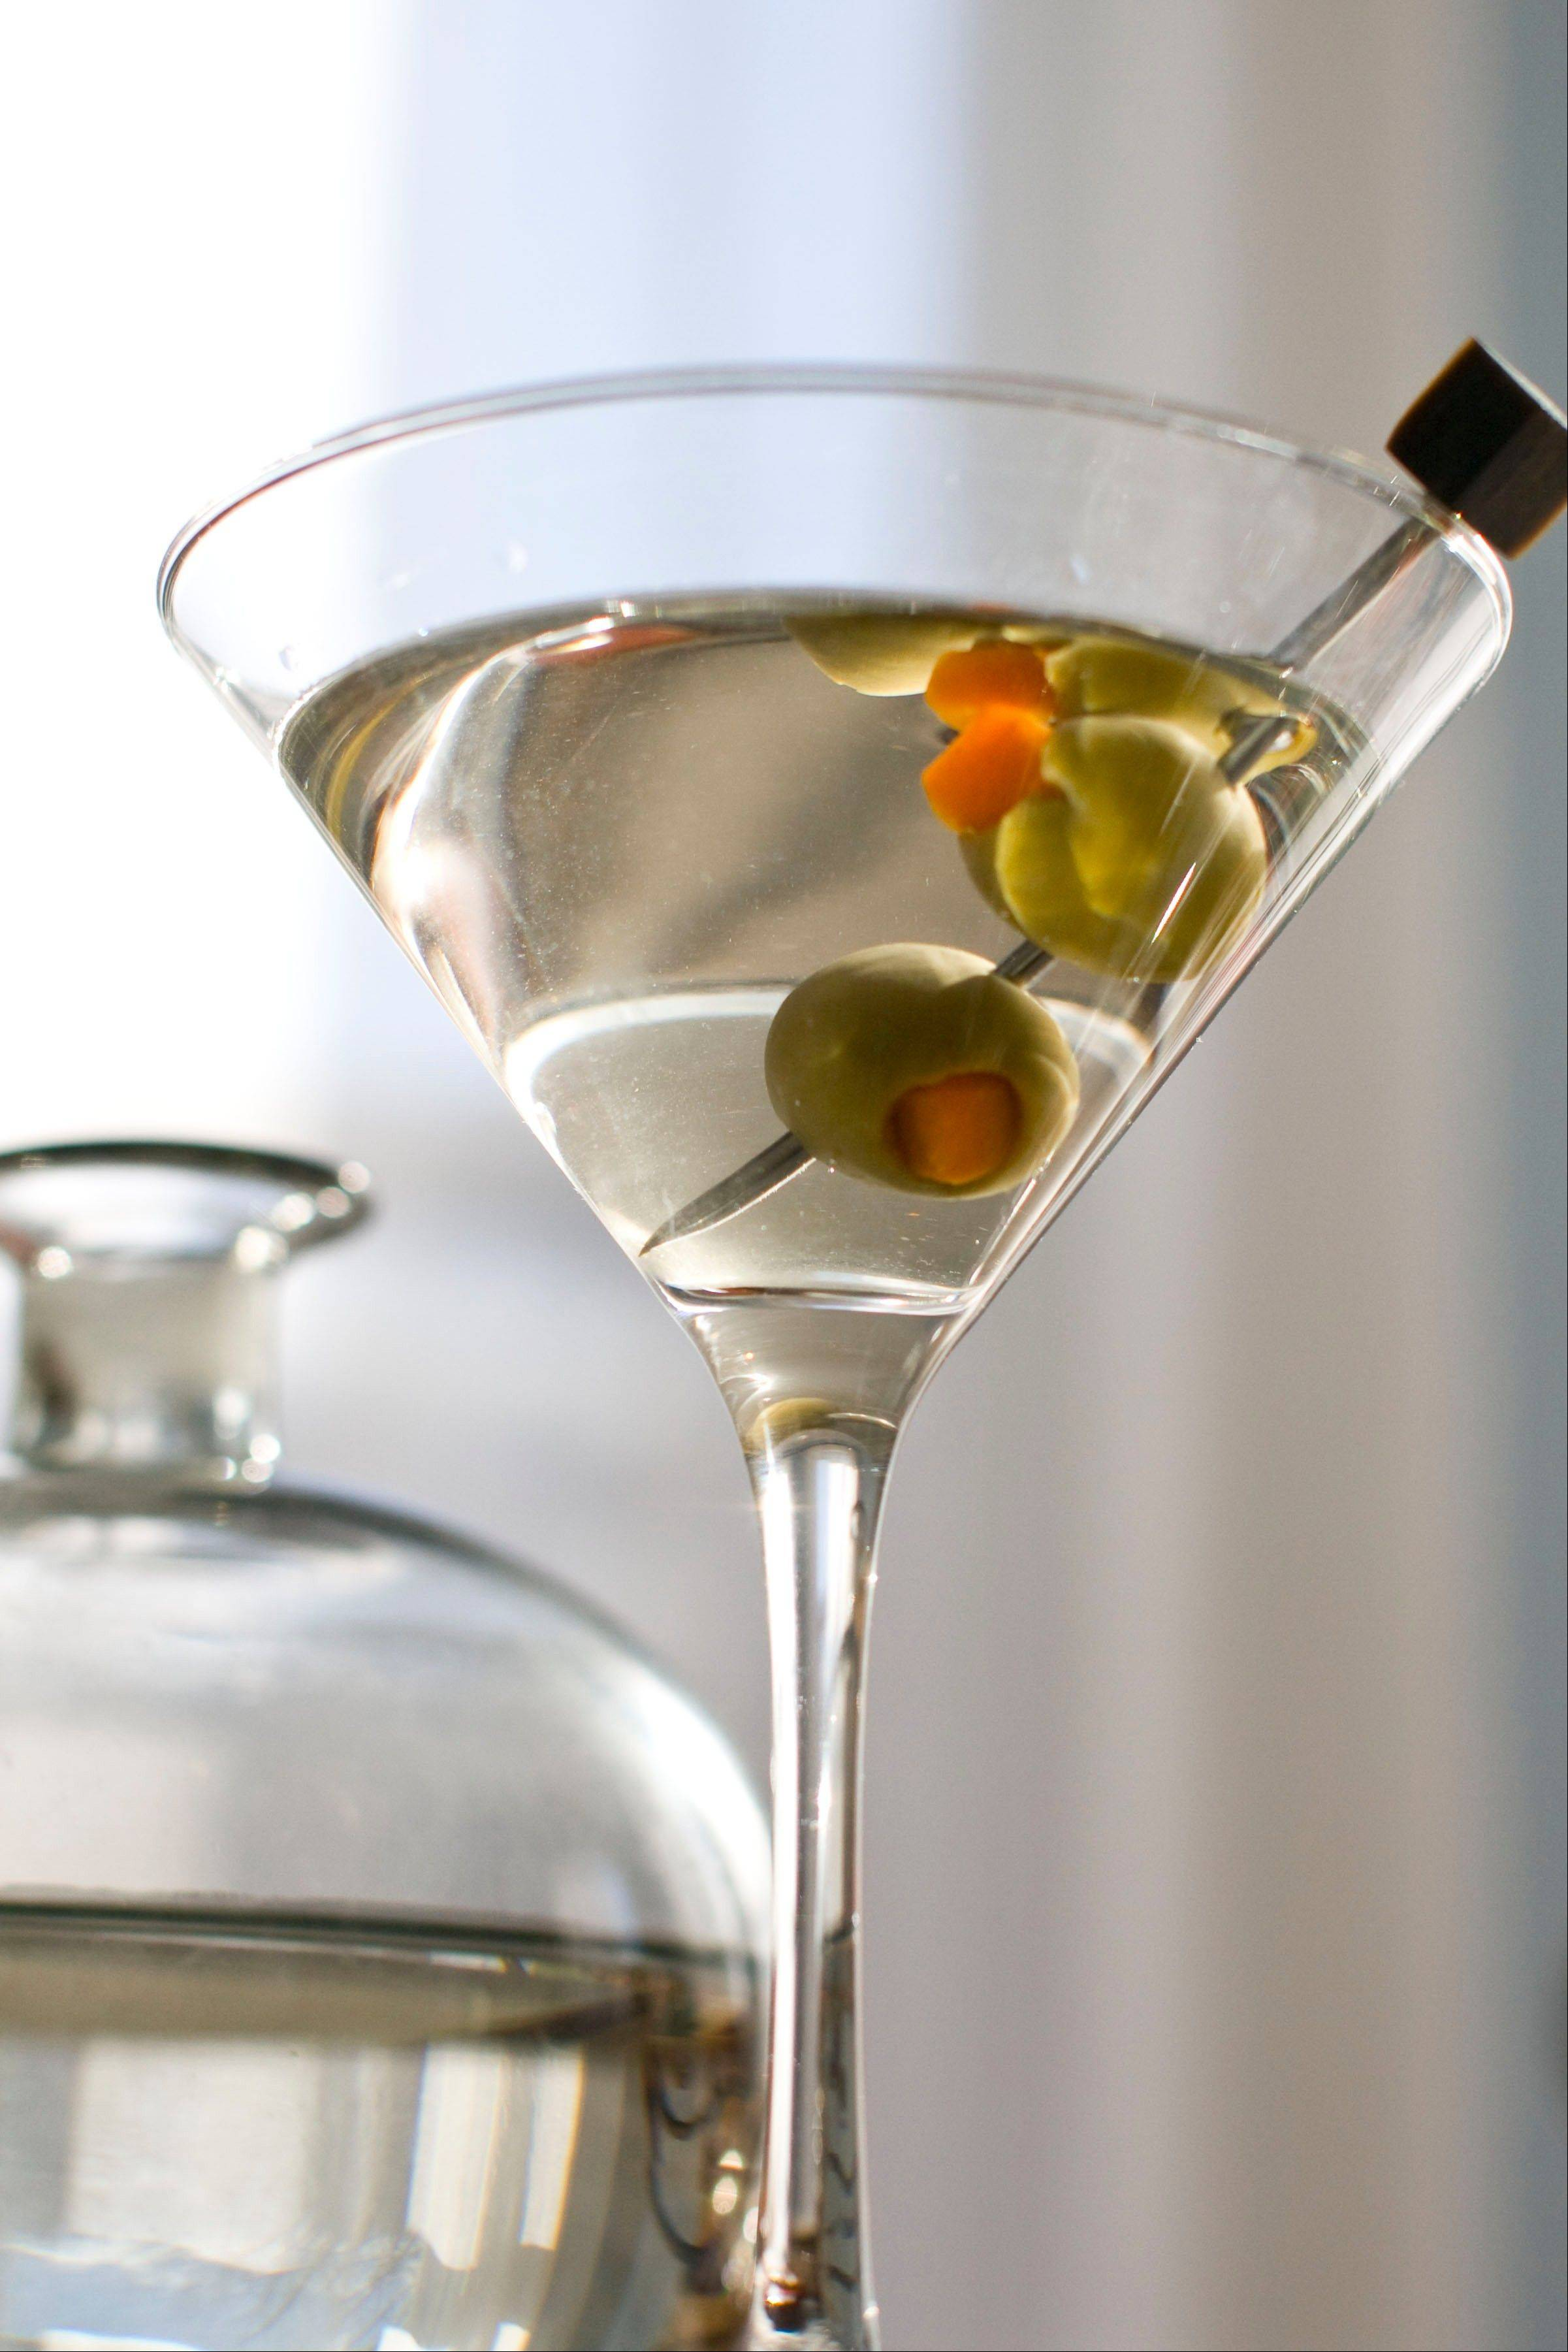 Don Draper would no doubt approve of this classic martini made with gin and vermouth.